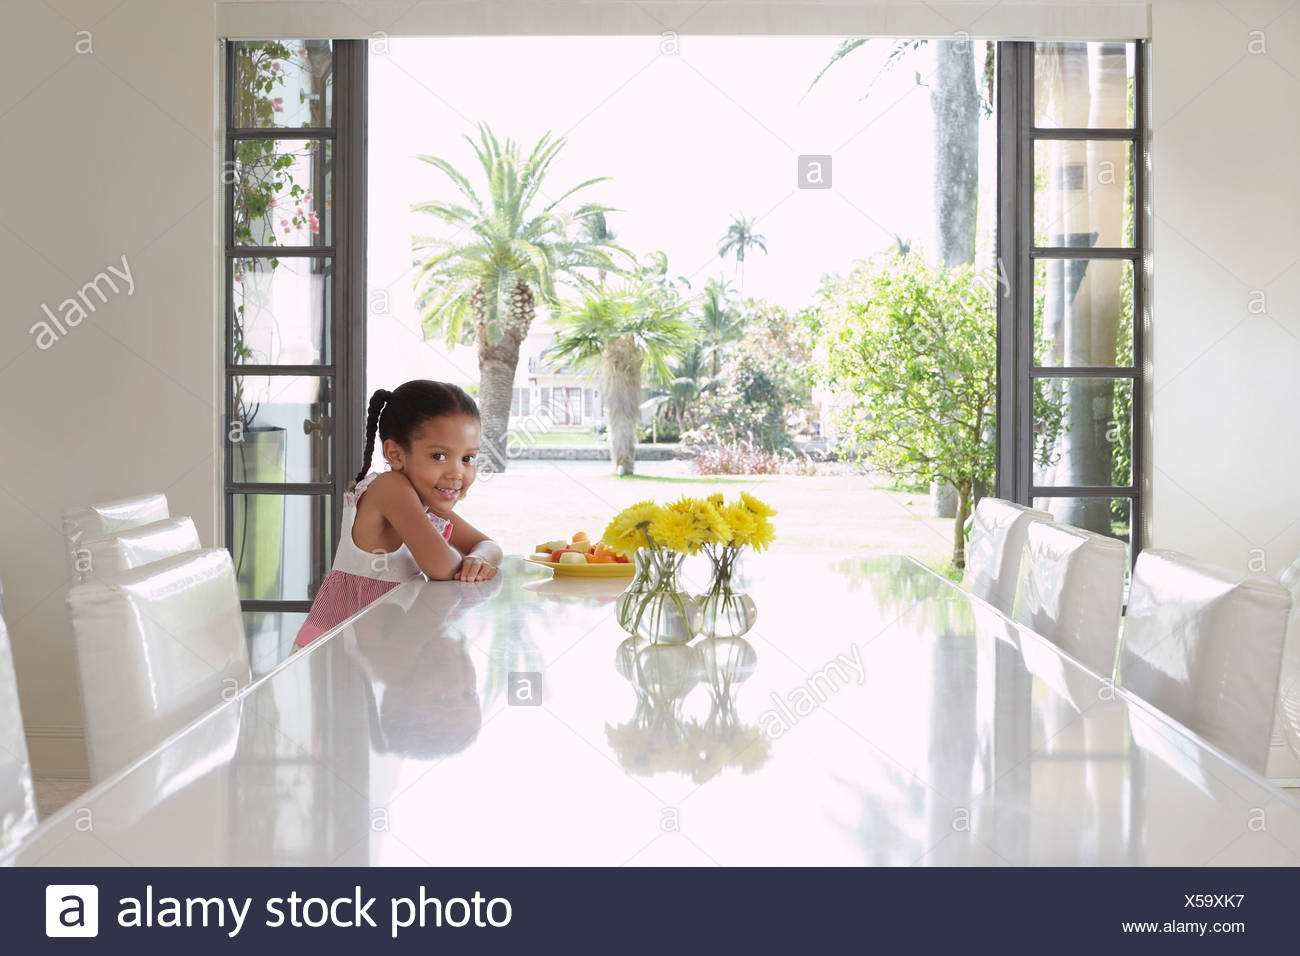 Girl (5-6 years) sitting at dining table - Stock Image